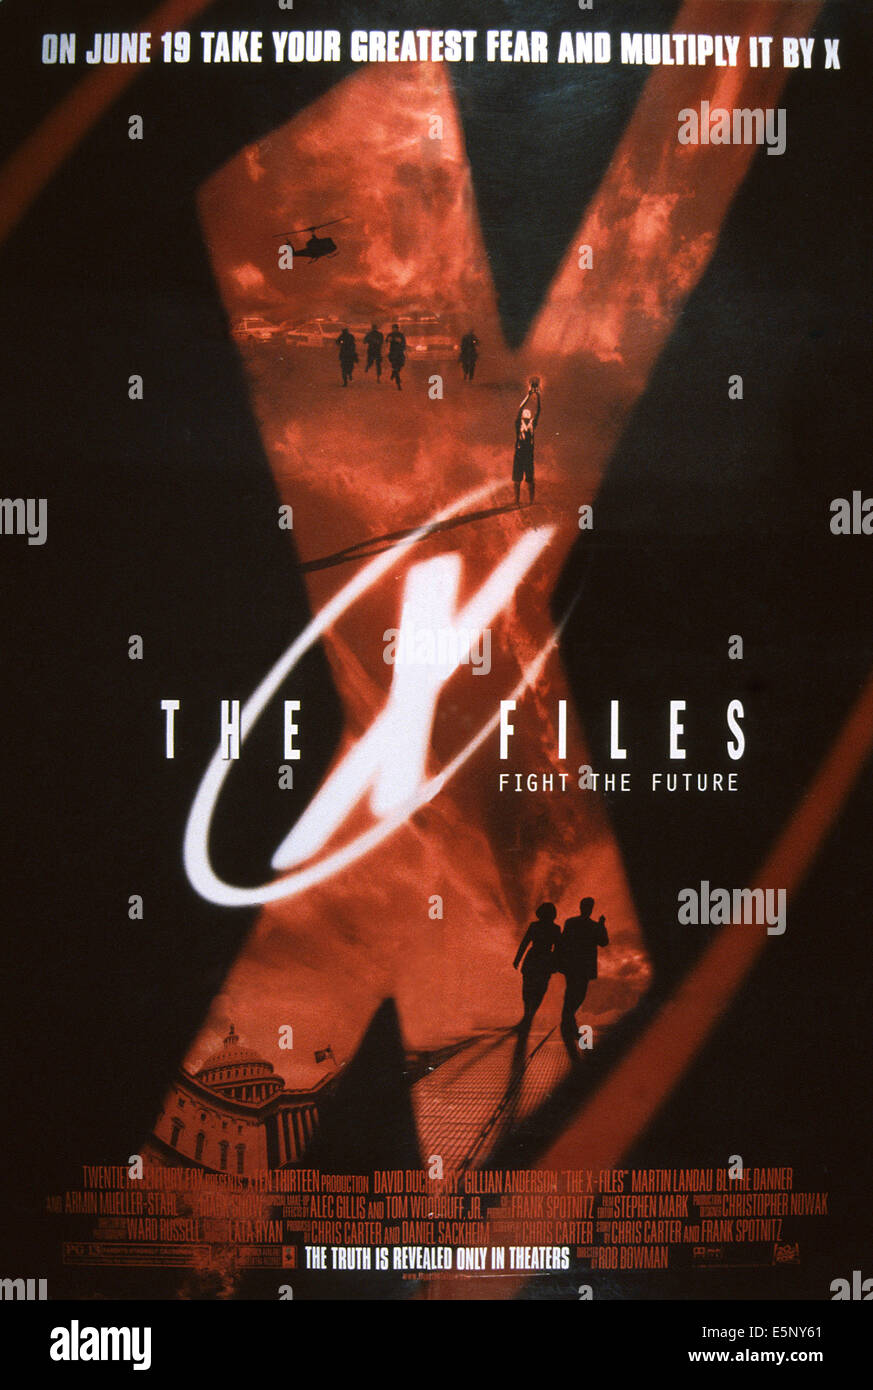 THE X-FILES MOVIE, US advance poster art, 1998. TM and Copyright ©20th Century Fox Film Corp. All rights reserved/courtesy - Stock Image